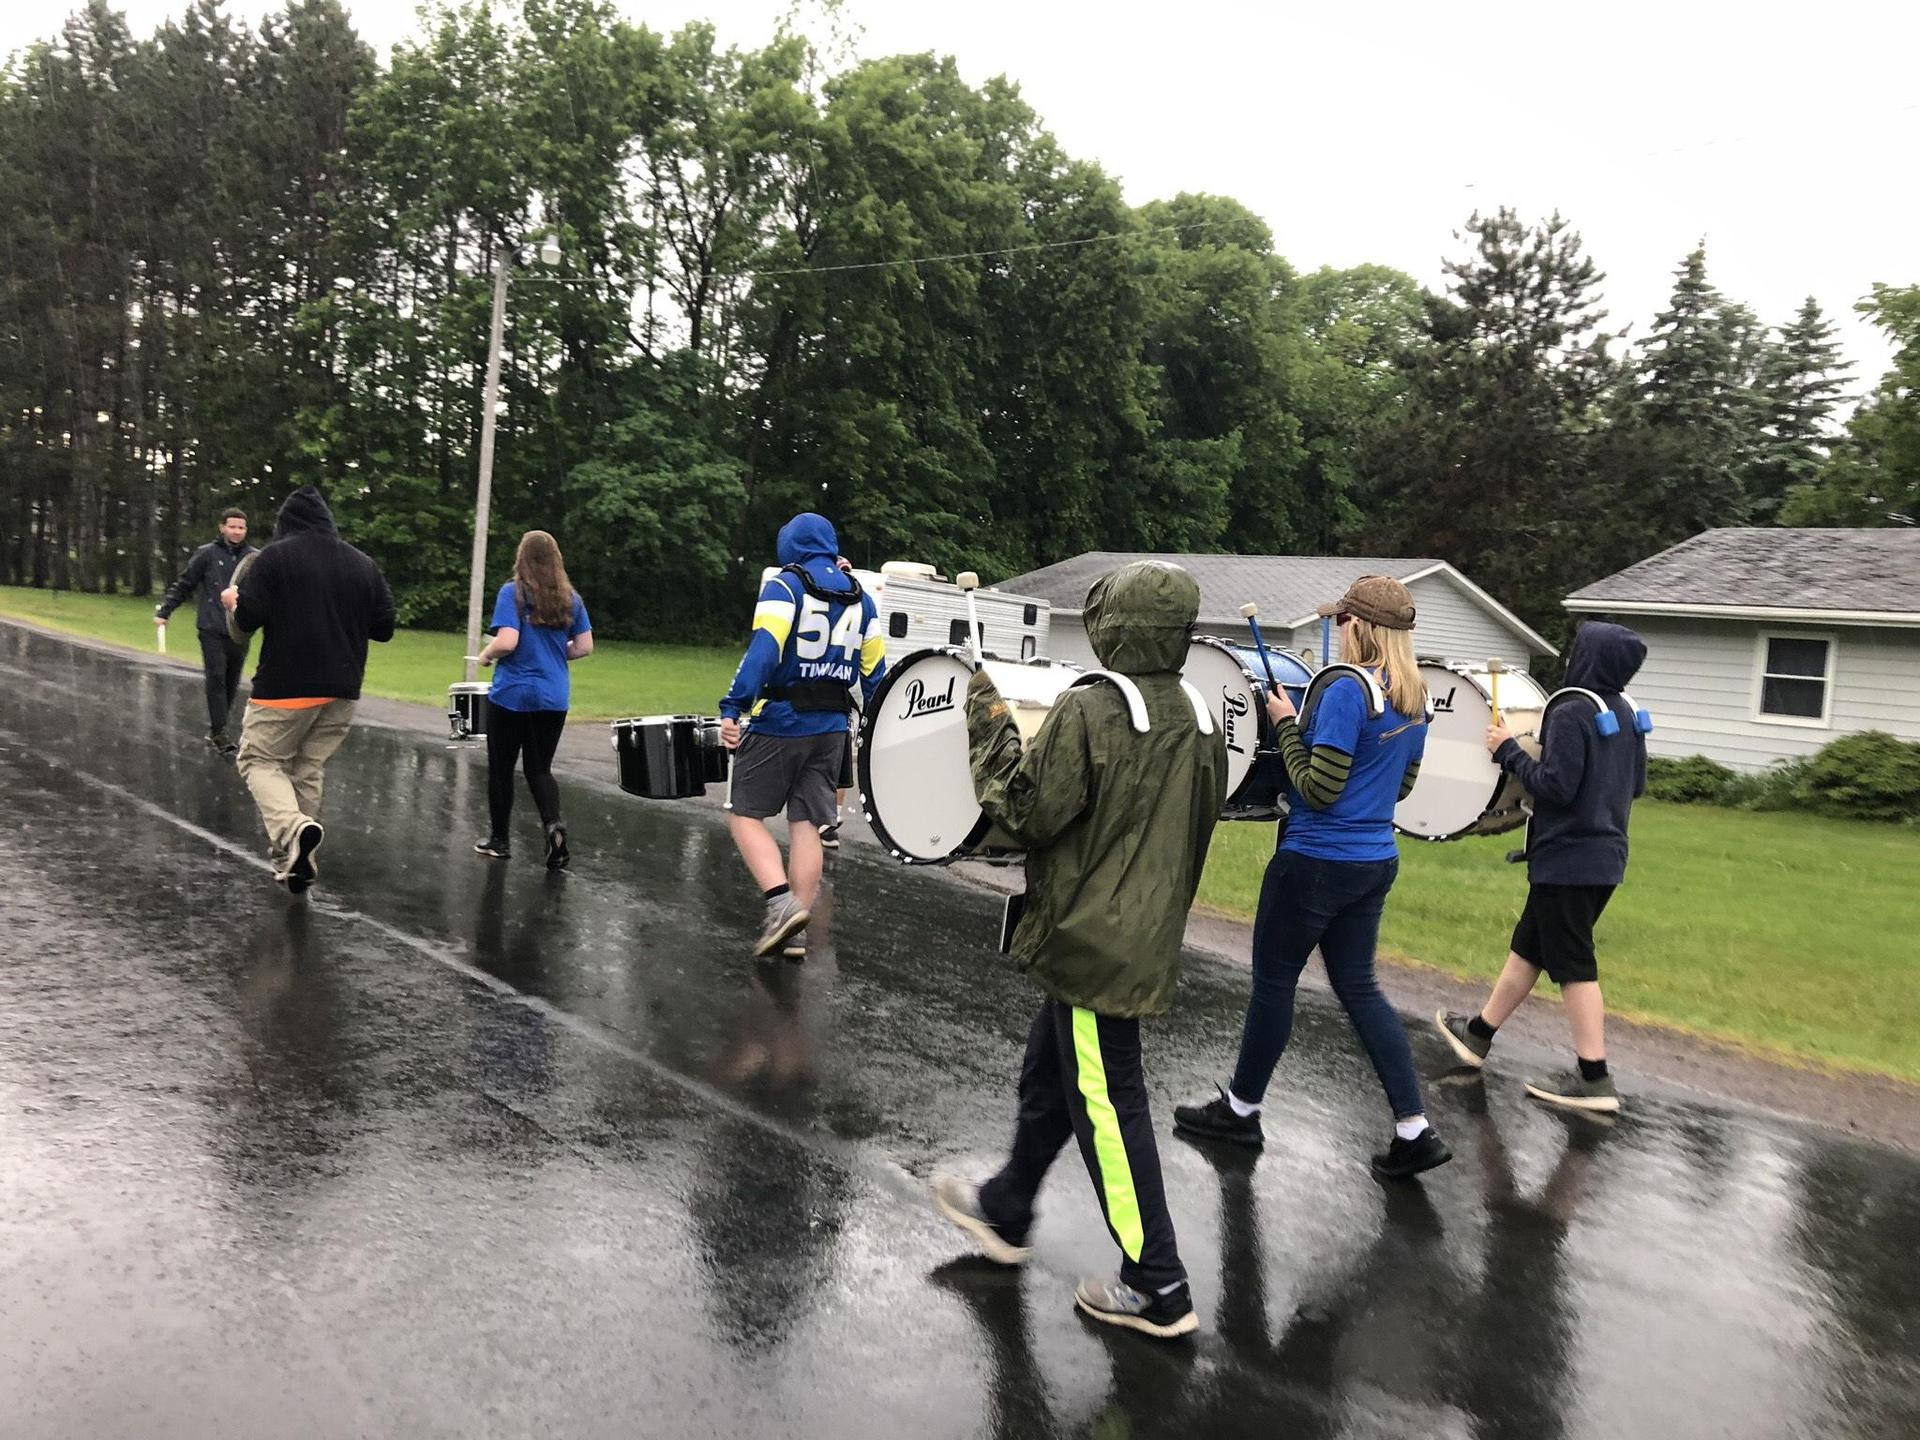 Practicing in the rain